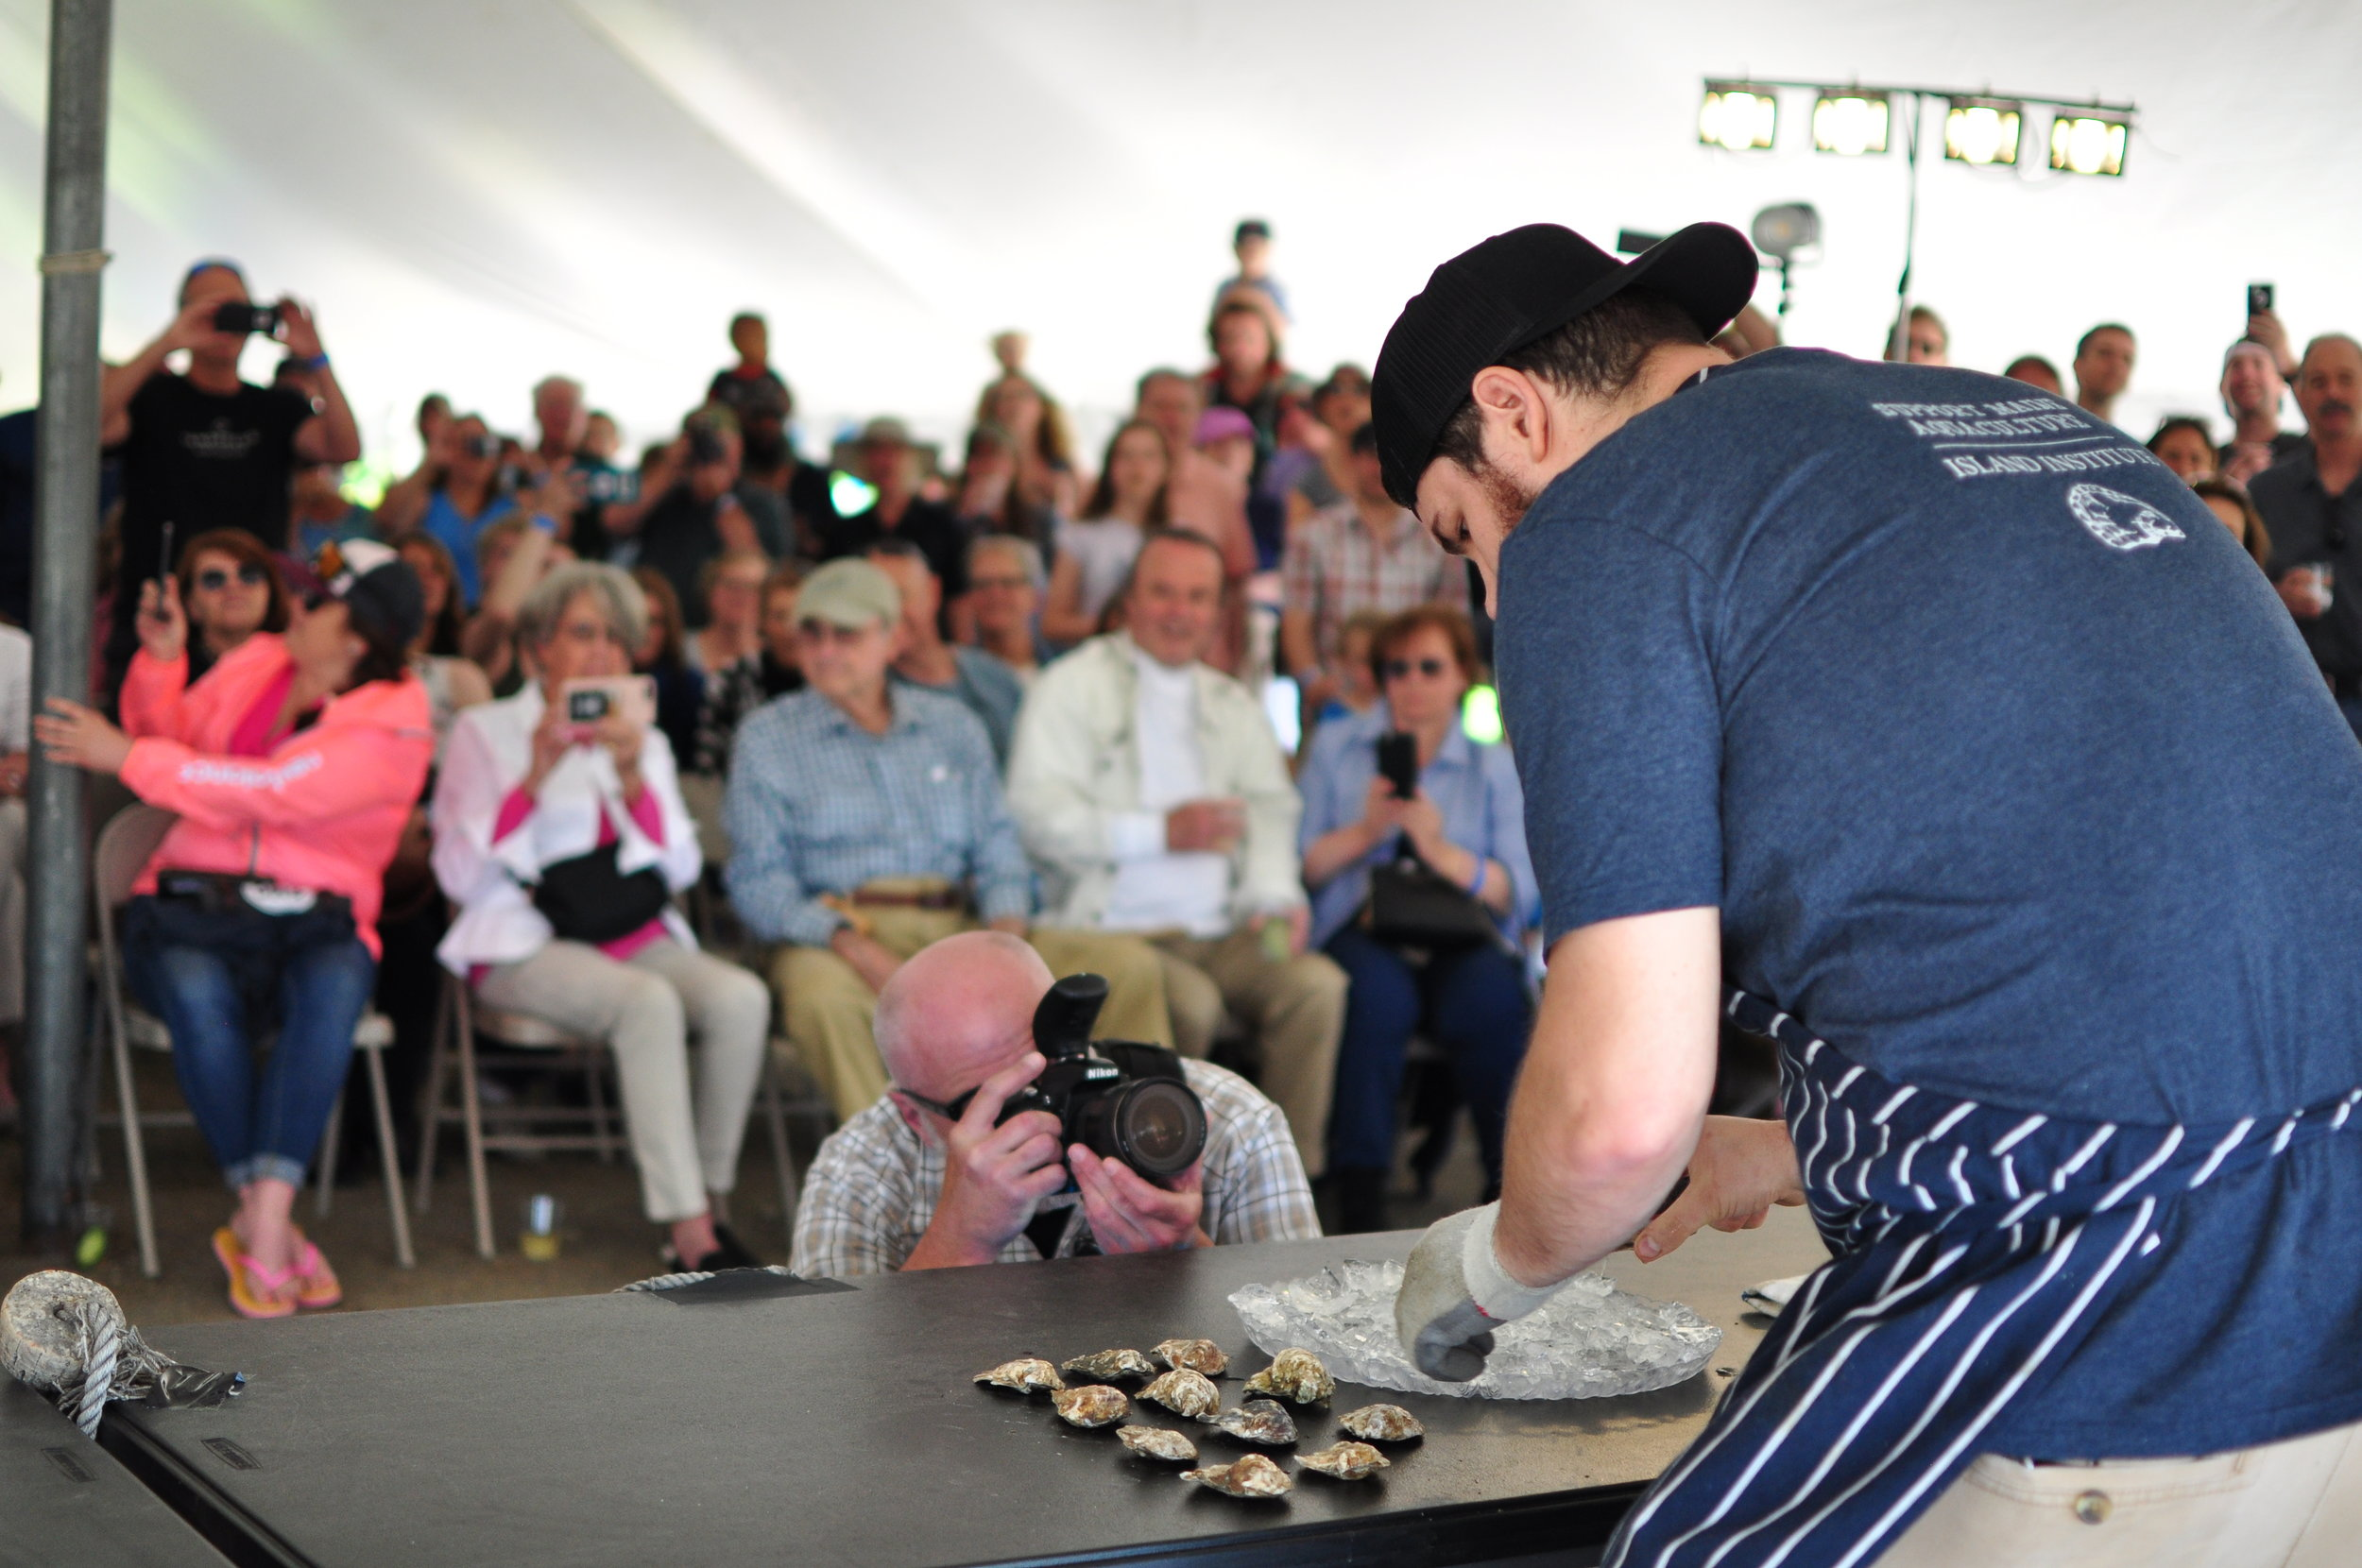 The shucking competition at the DOC sources somer of the very best shuckers in North America. Photographer: Warwick Ombler.